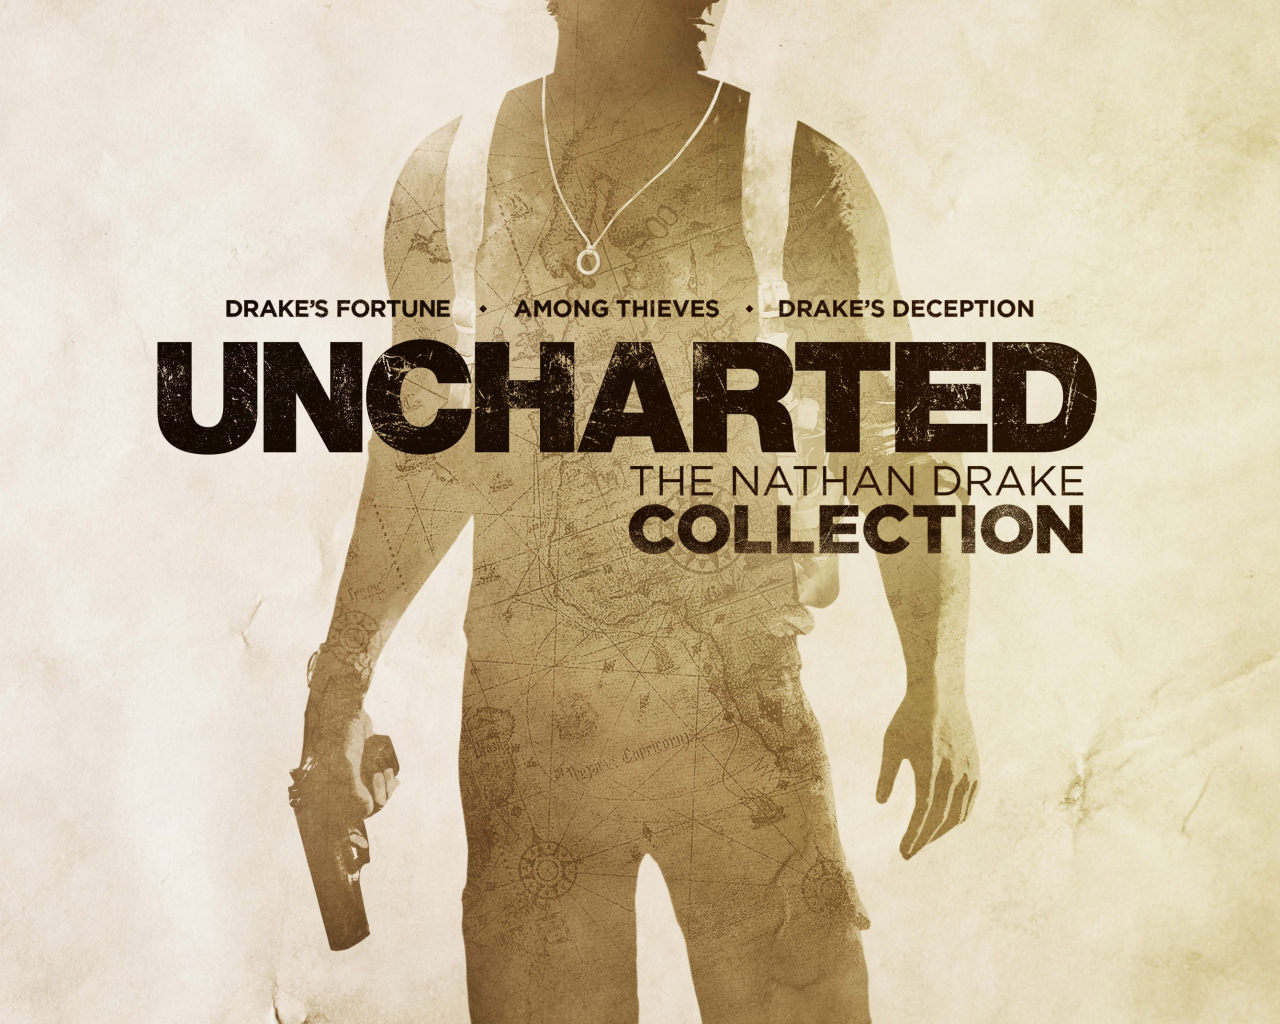 Free Download Uncharted The Nathan Drake Collection Un Trailer Une